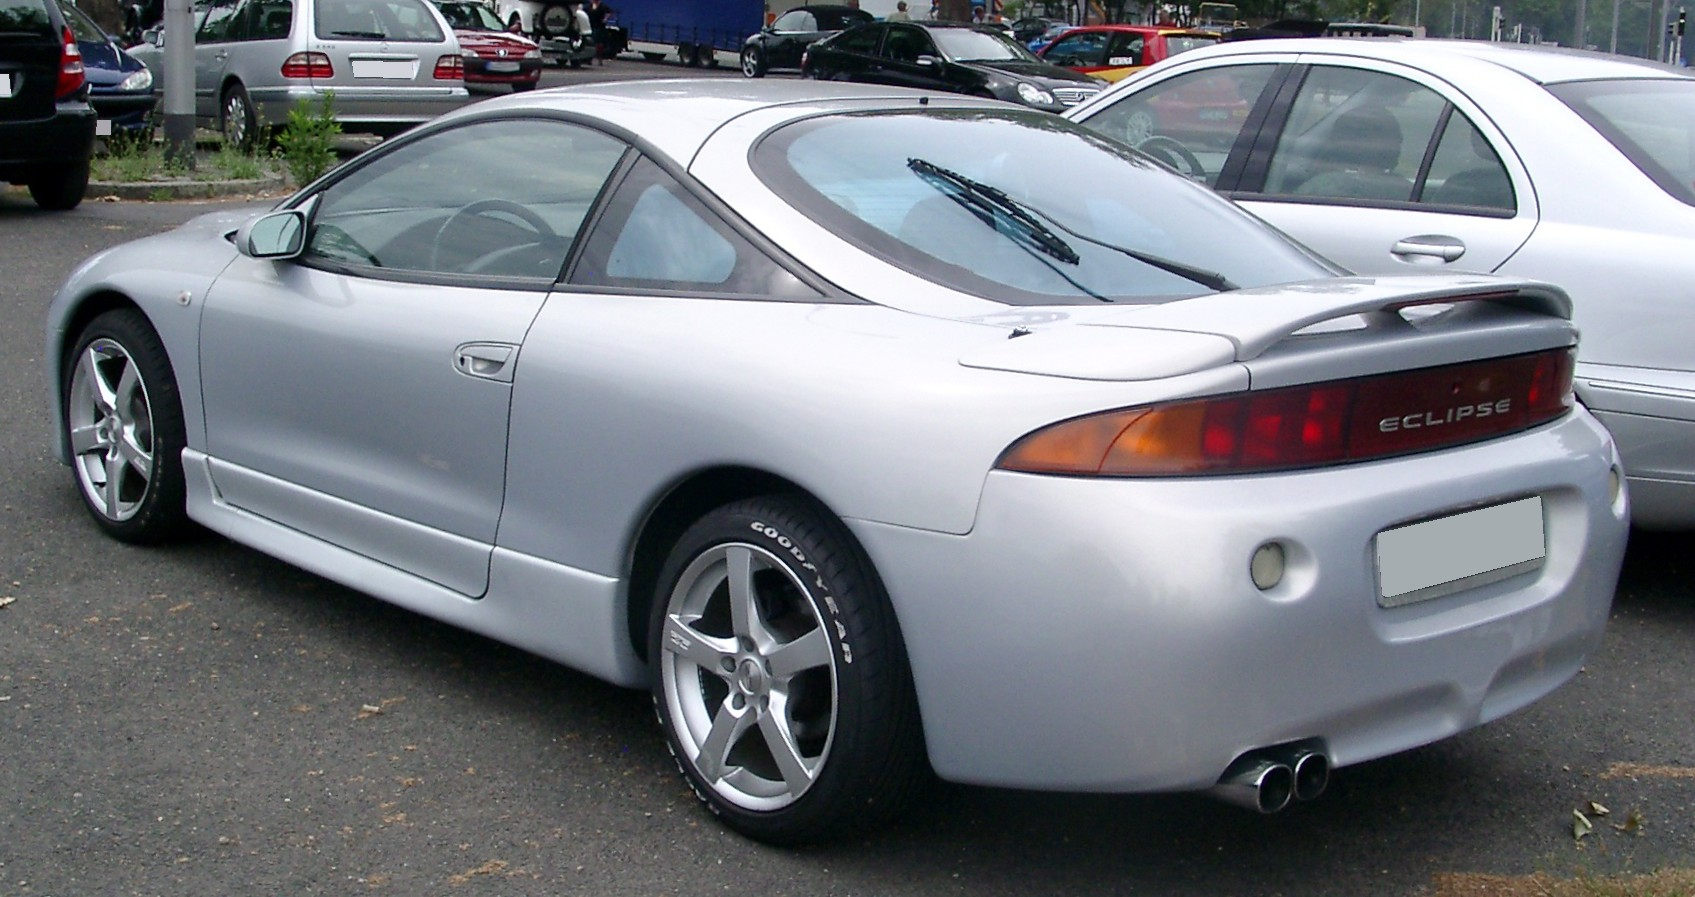 File:Mitsubishi Eclipse rear 20080801.jpg